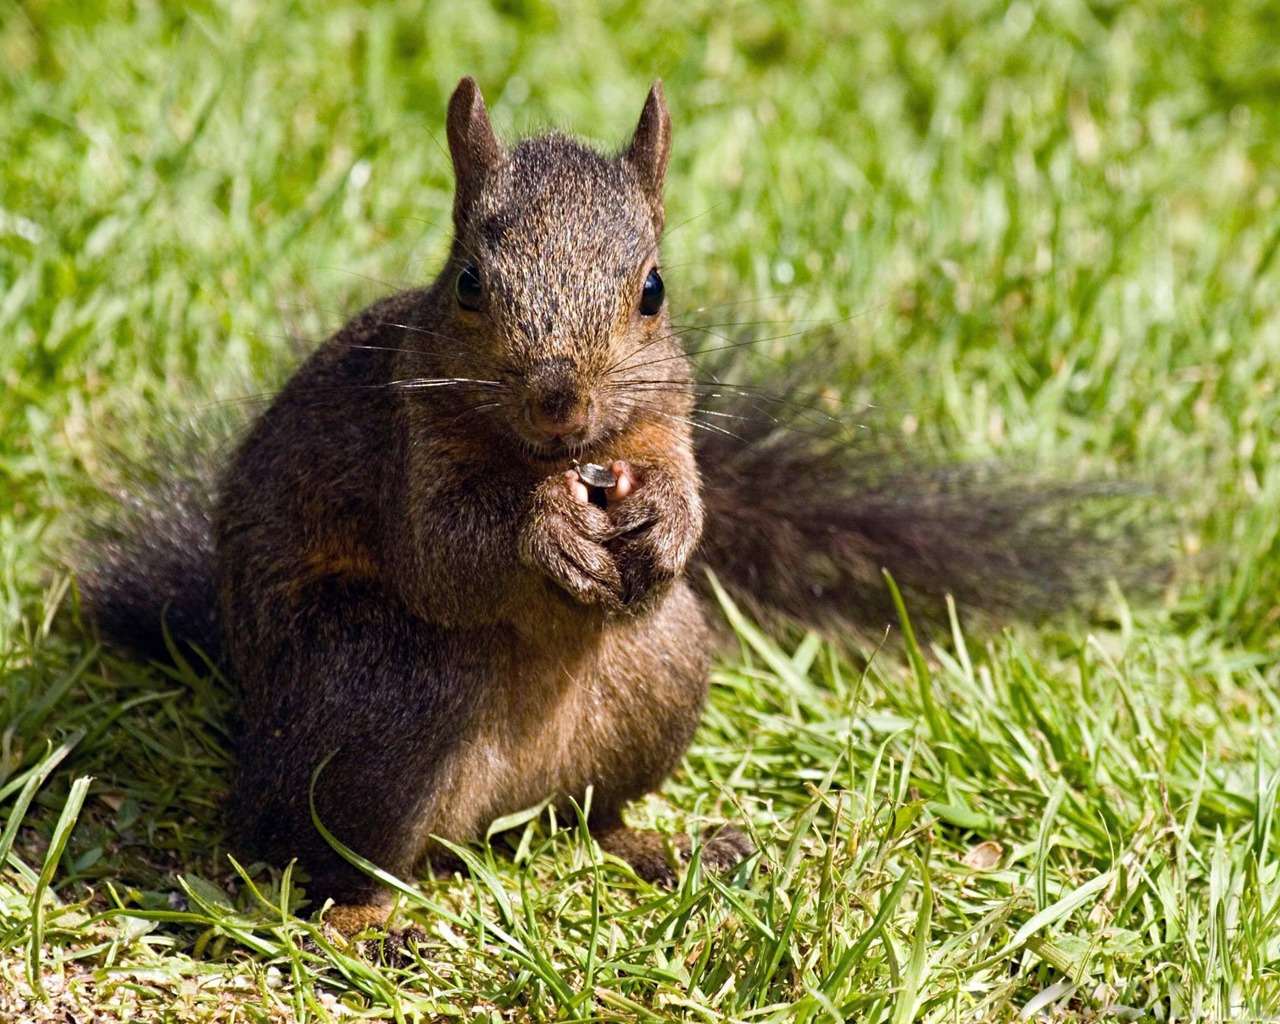 صور سنجاب Squirrel Pictures See A Picture